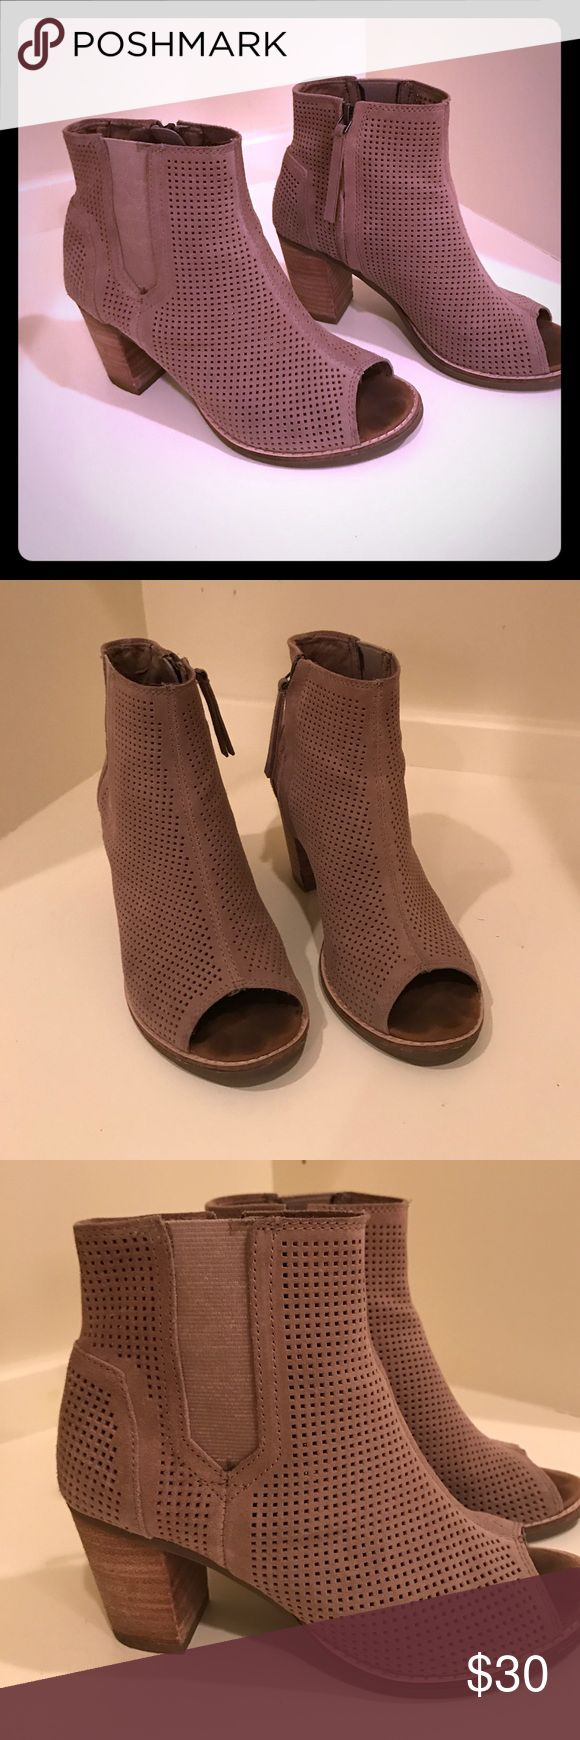 """Toms open toe booties in tan Great neutral shoe. Sueded leather 3"""" block heel. Very comfortable. These run a half size to a size big. TOMS Shoes Ankle Boots & Booties"""